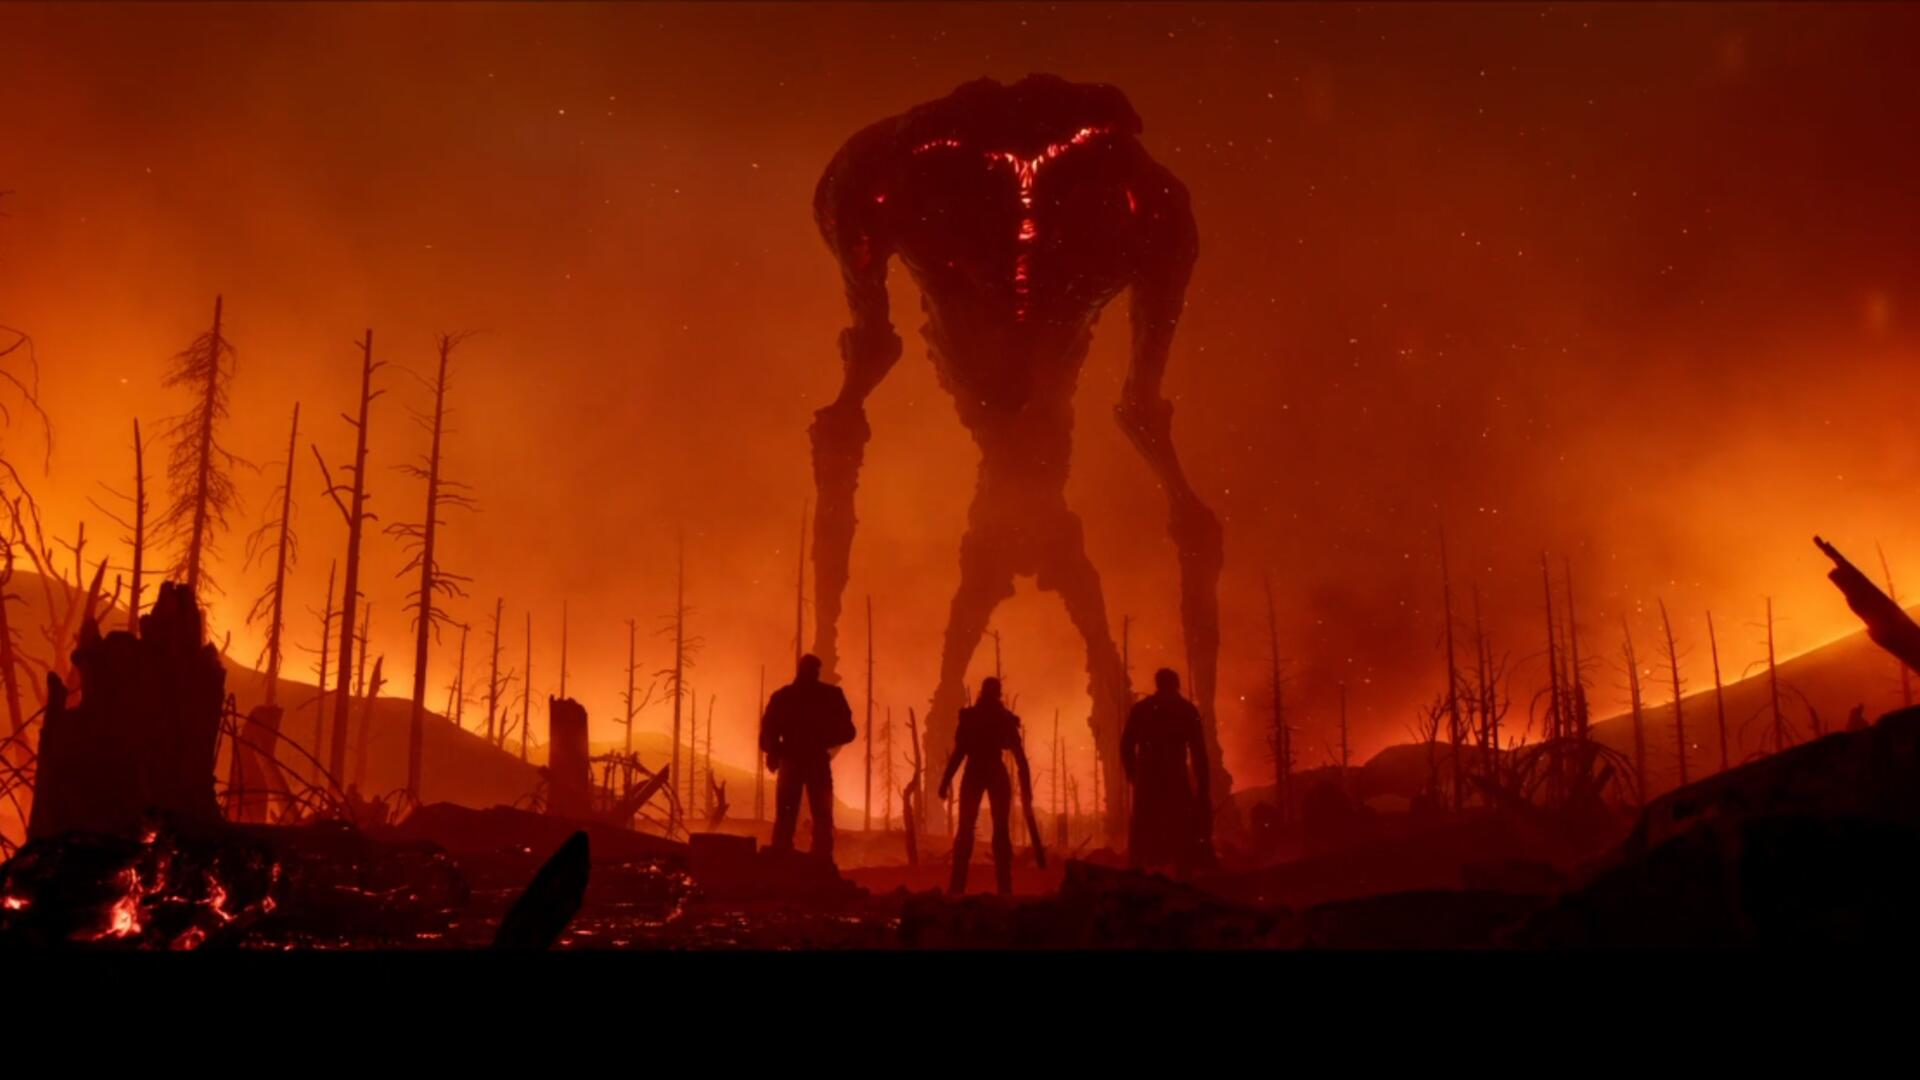 Outriders Release Date: New Square Enix IP, Gameplay, E3 2019 Trailer - Everything We Know